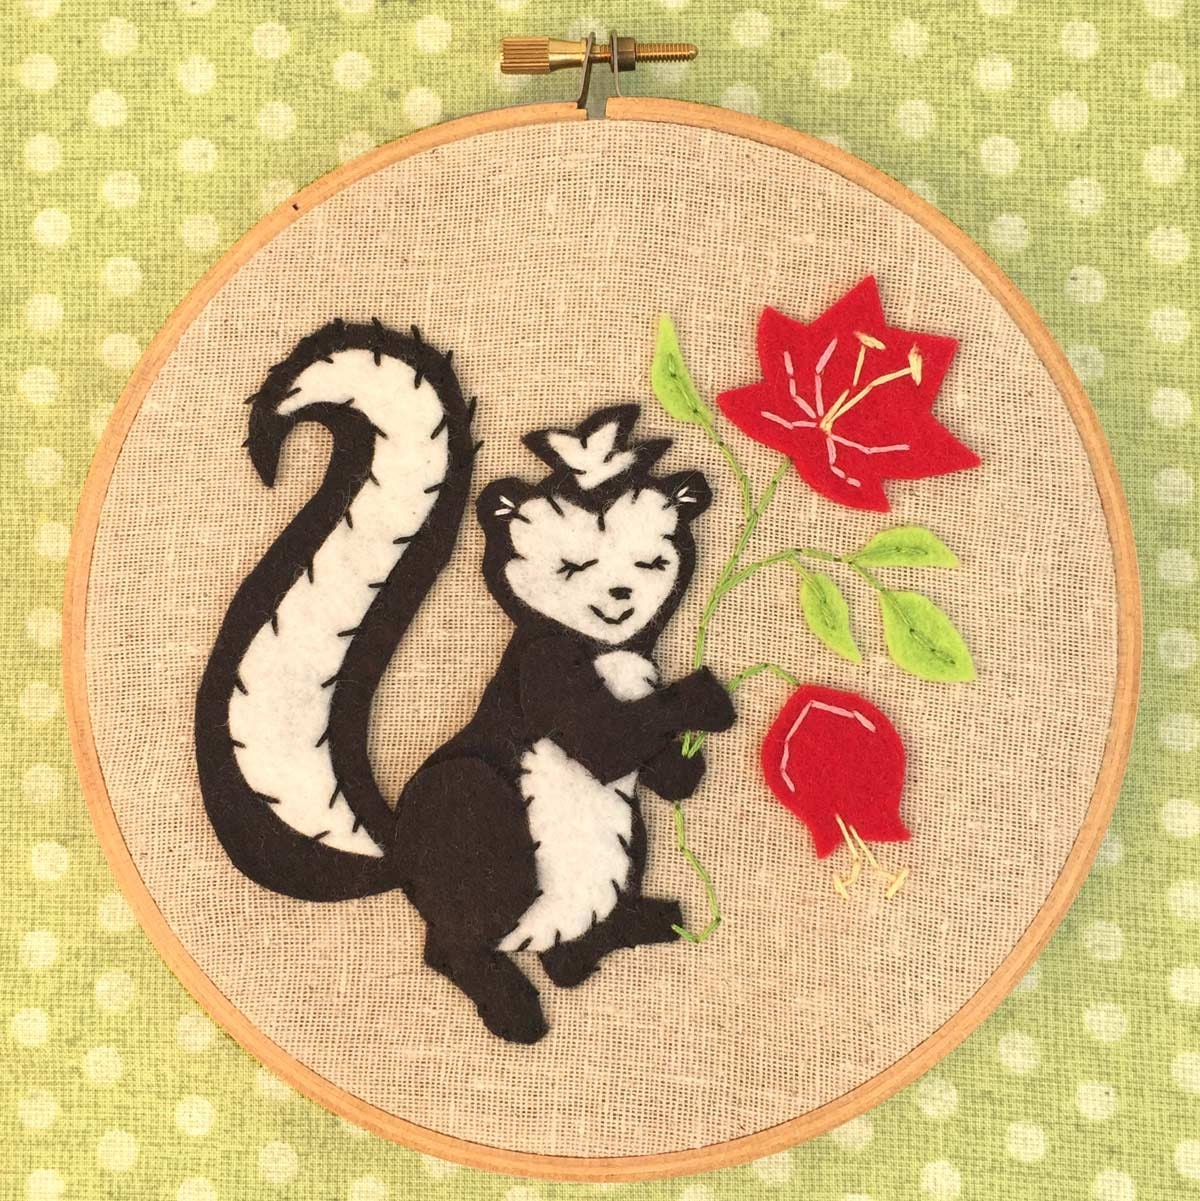 Skunk applique and embroidery kit felt